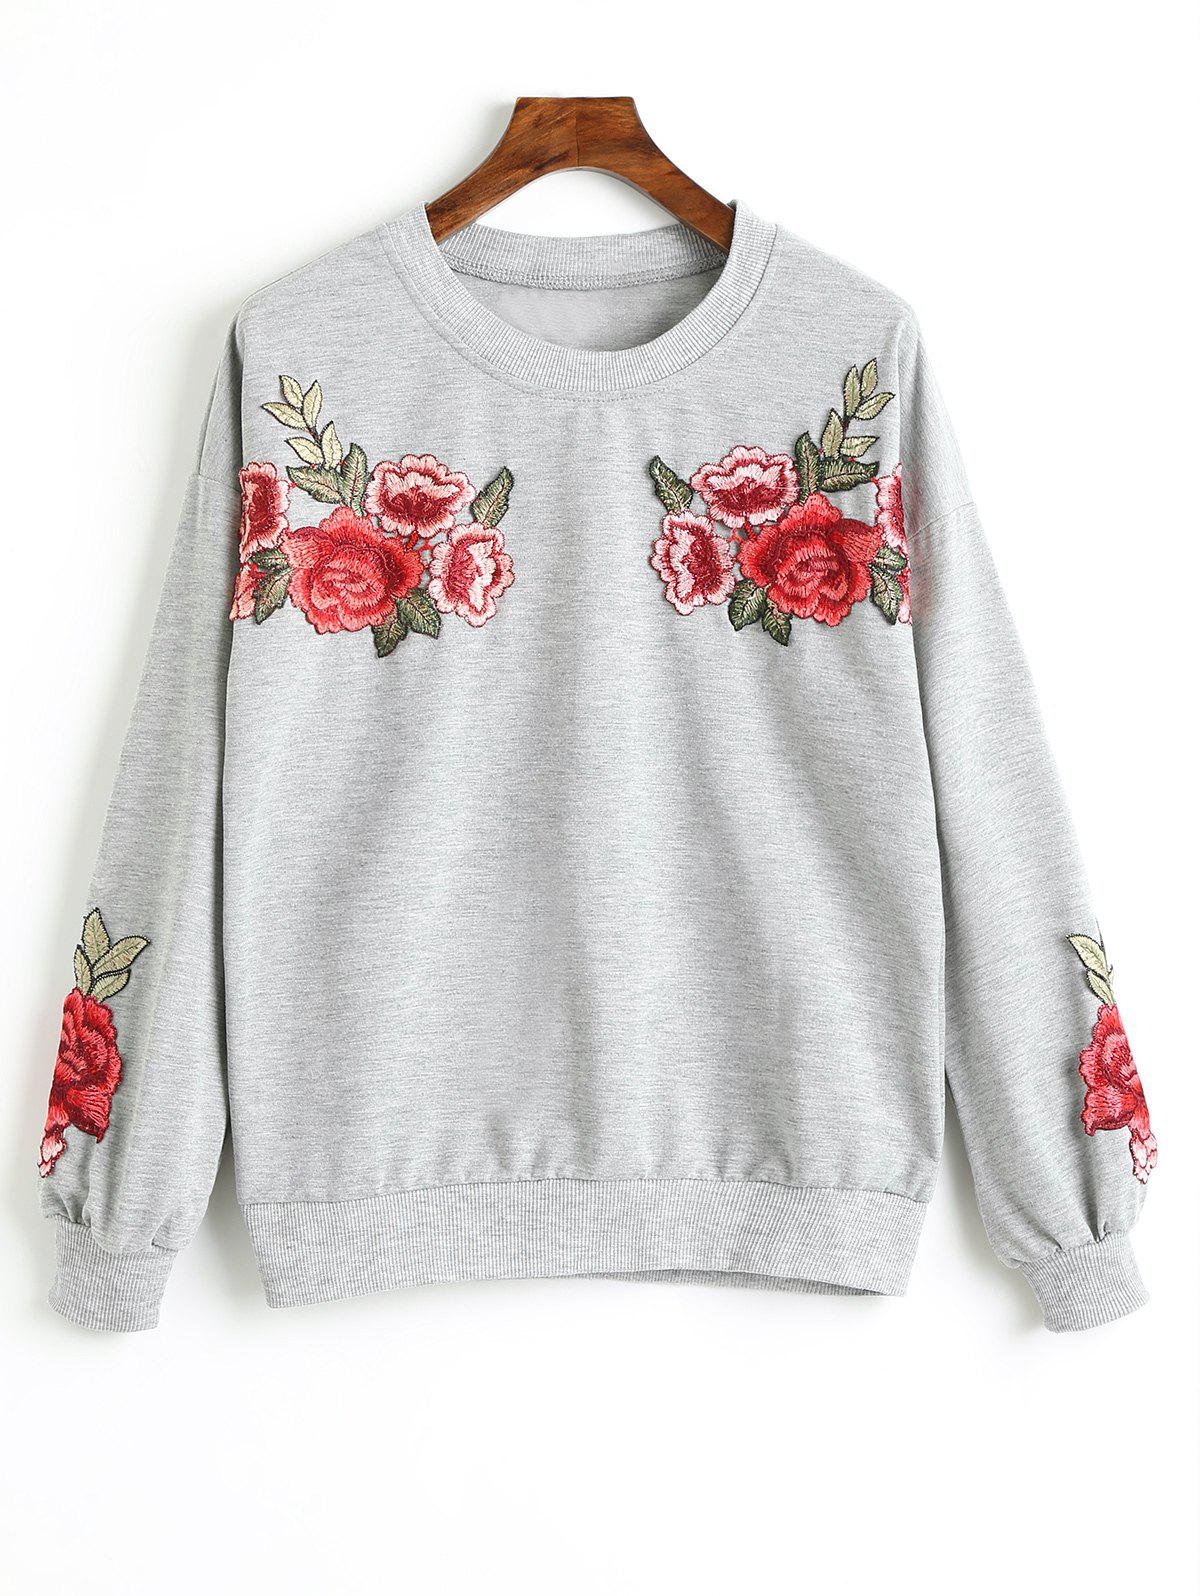 Unique Drop Shoulder Flower Appliques Sweatshirt